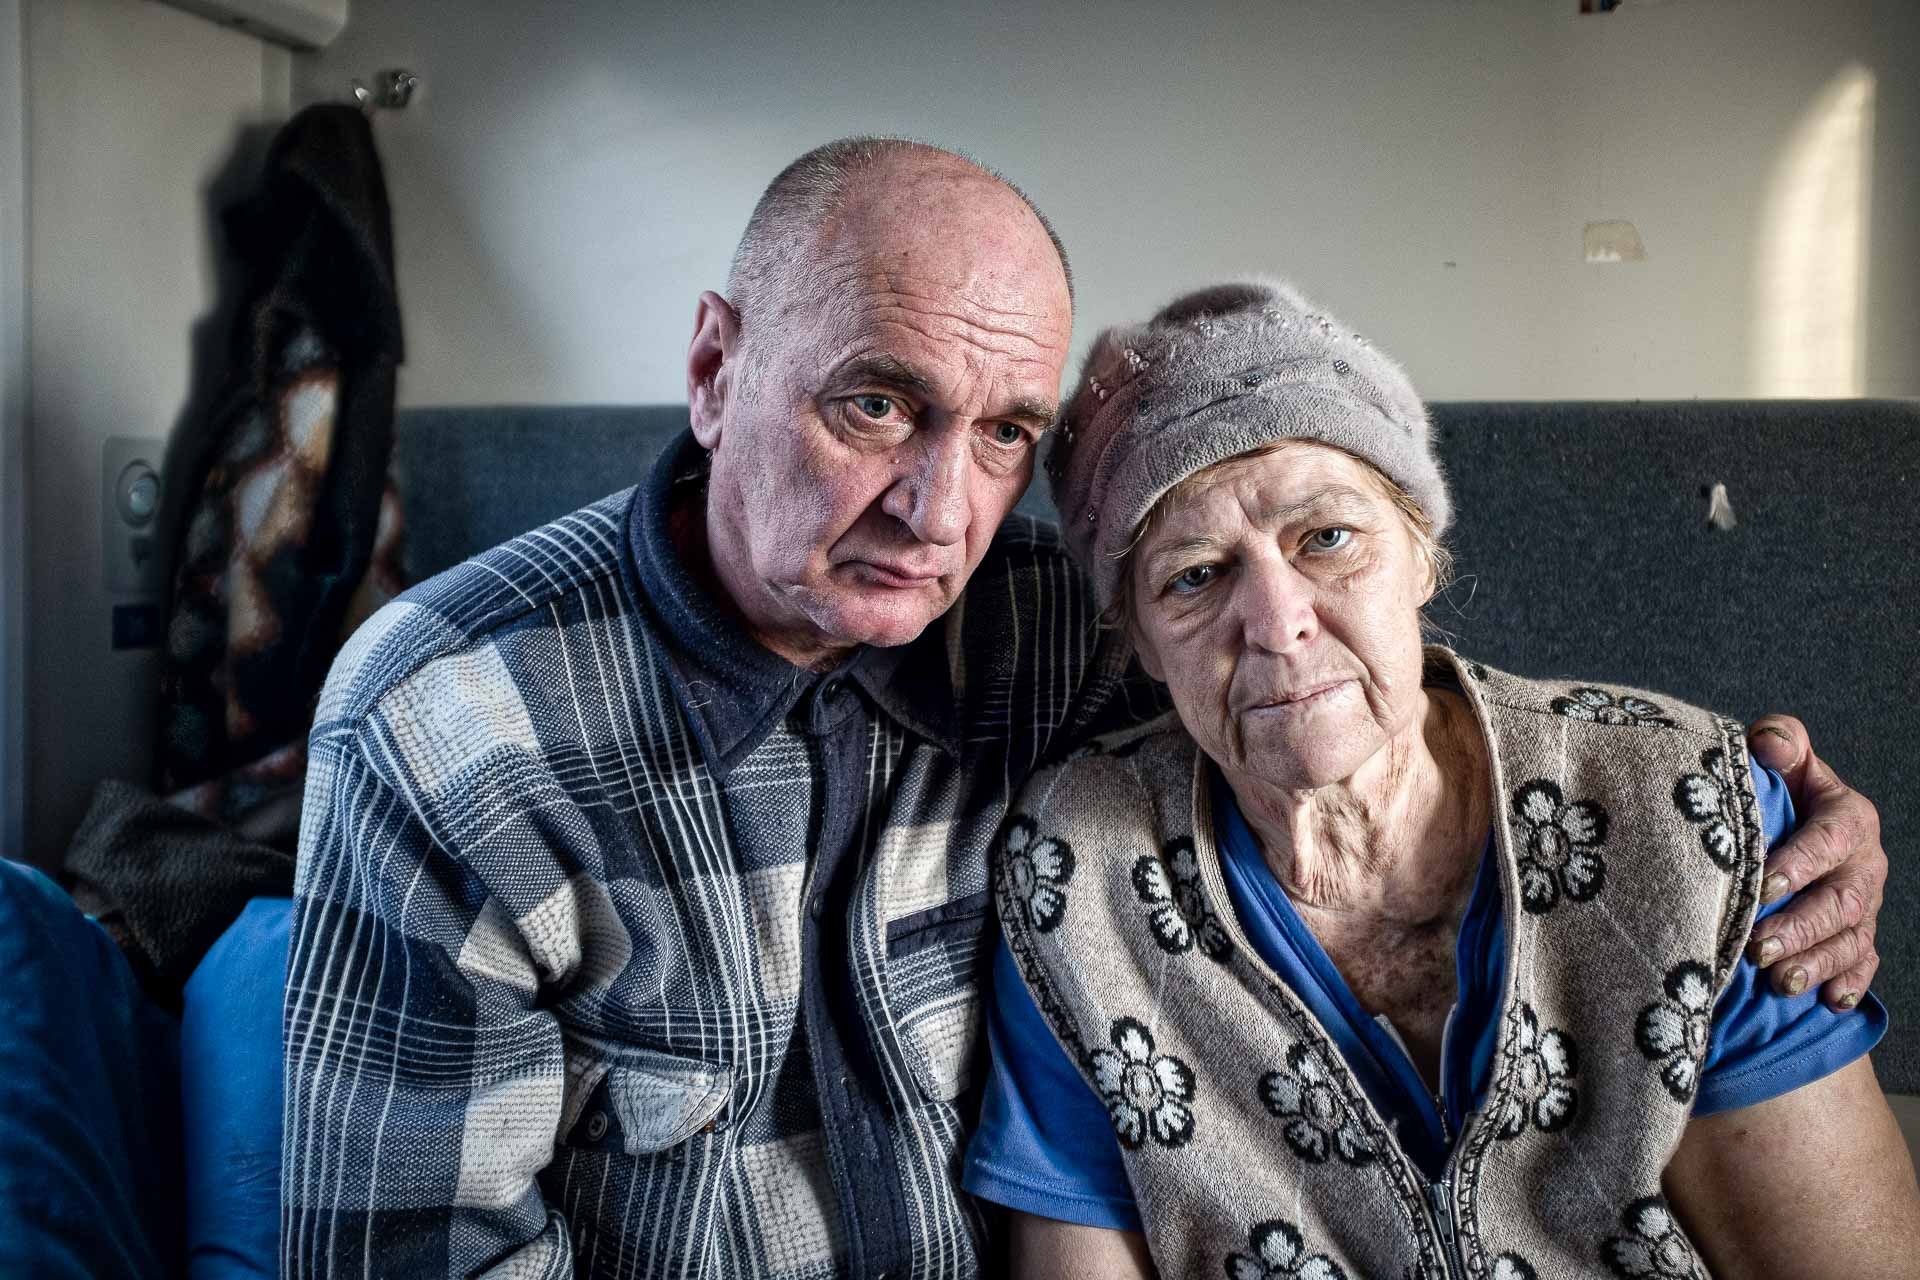 Nina is 62. She and her husband Valentin come from Debaltseve. Their house has been destroyed. Nina has a cancer that can't be treated for the moment. She has an only hope : see her son again, Gennadiy, 43 who lives in Alchevsk. Because of the war, she can't reach him. She died two weeks after our meeting. Slaviansk - UKRAINE